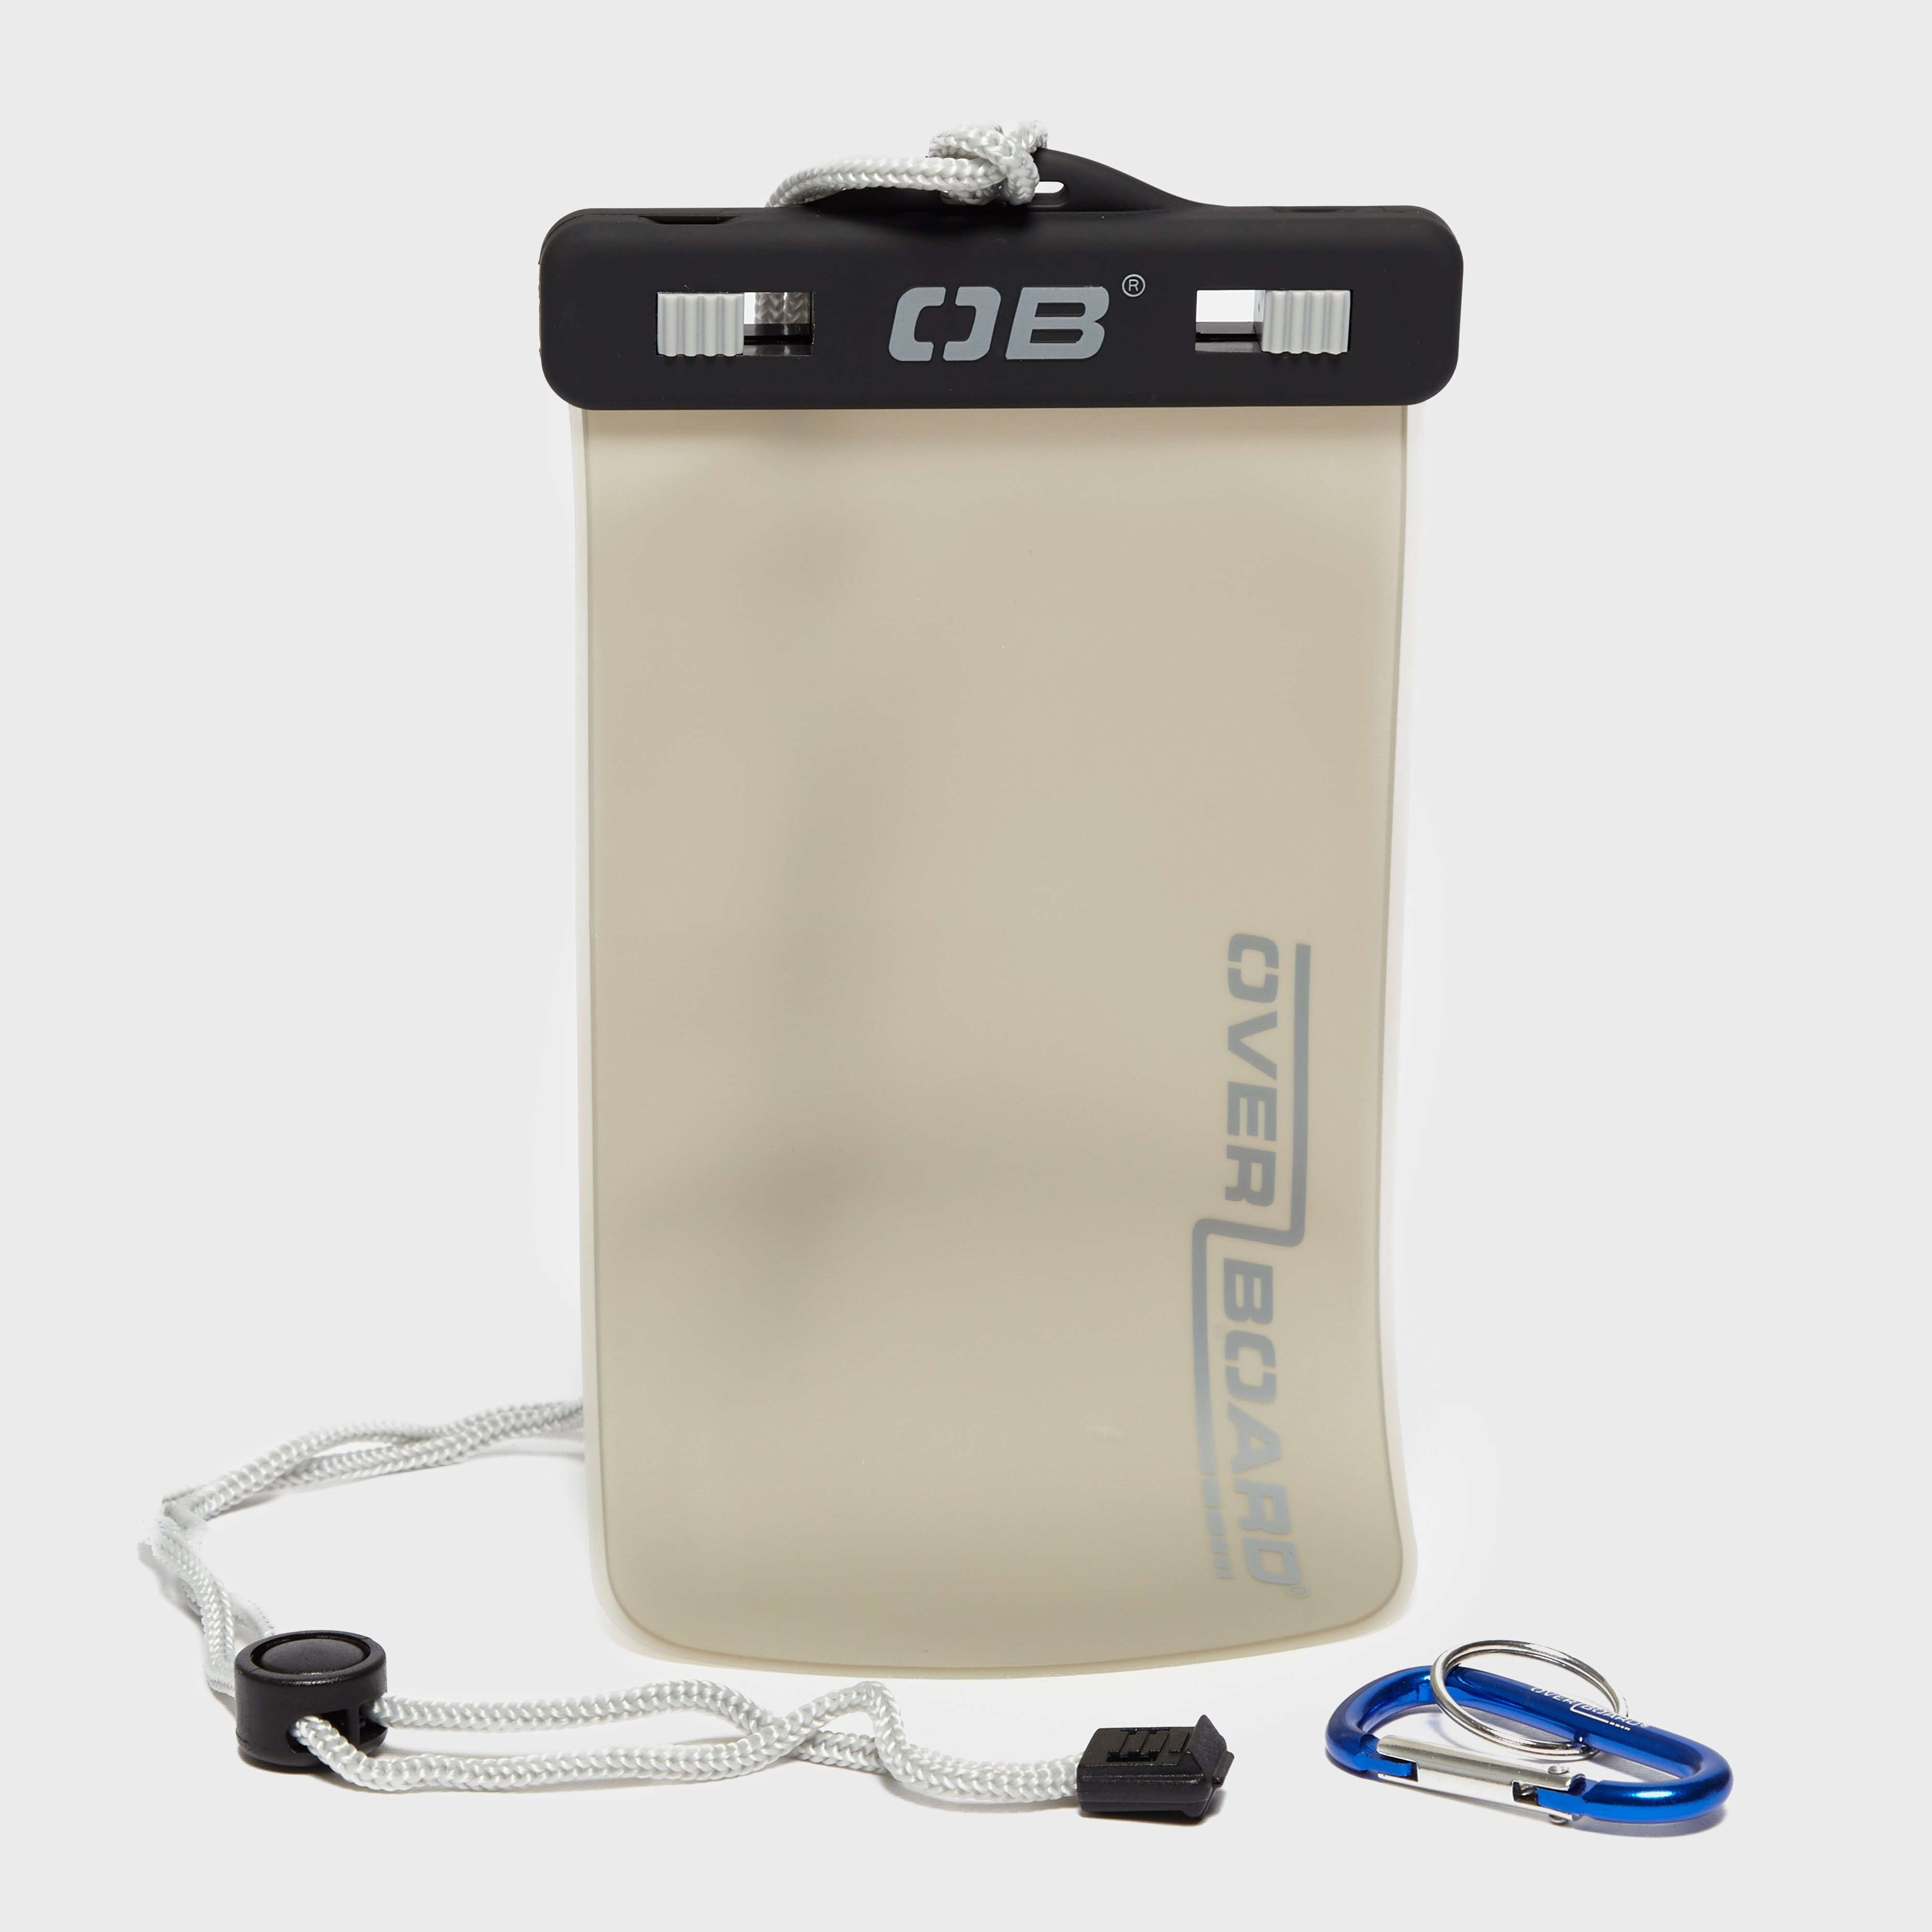 OVERBOARD Mobile Phone Waterproof Case (Medium)